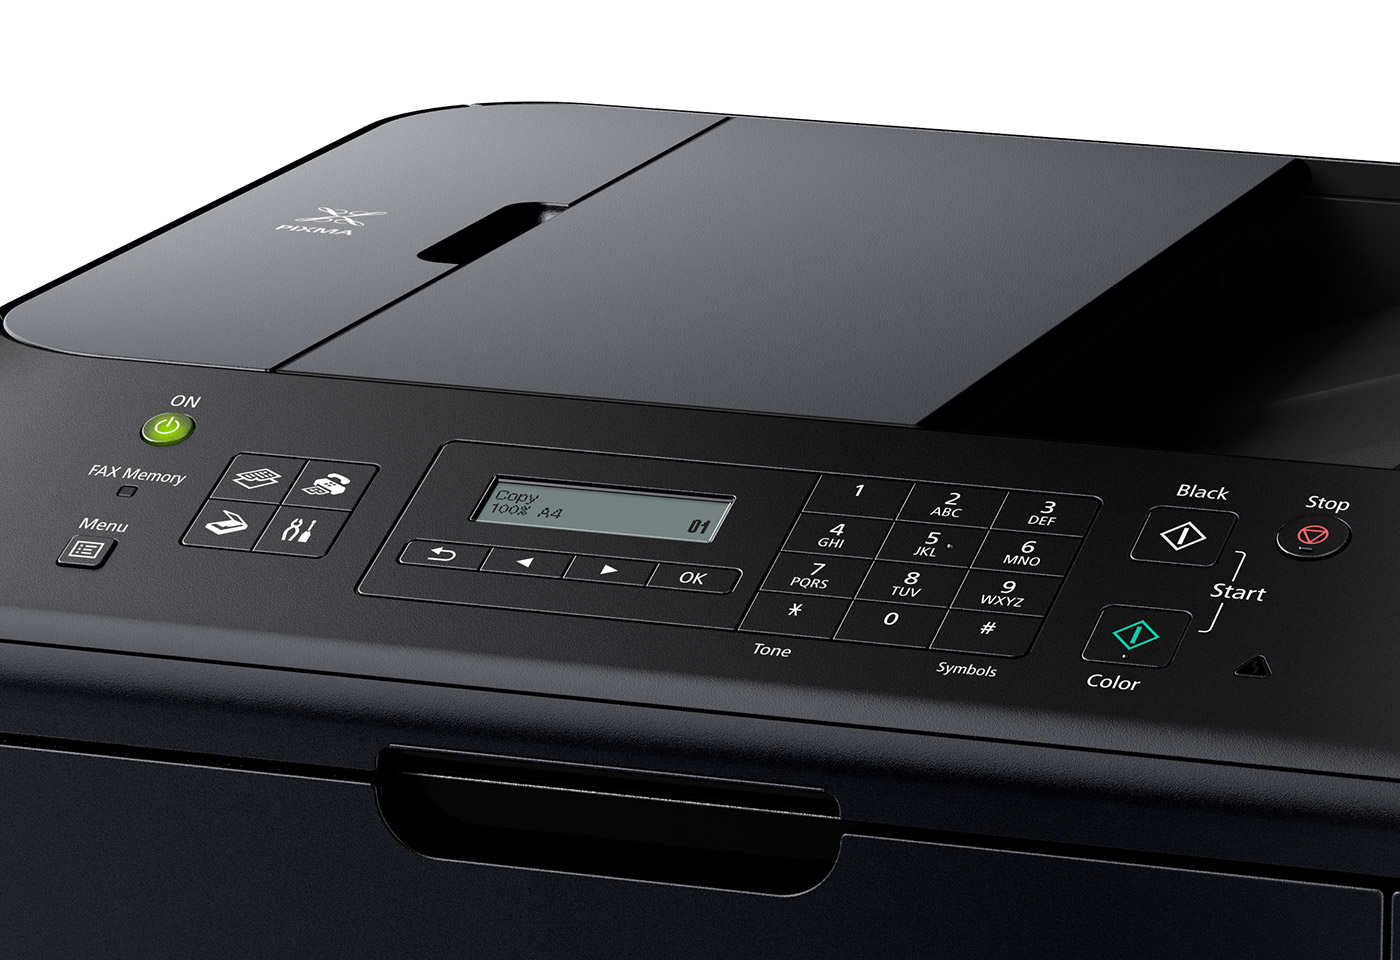 close up of the screen of a MAXIFY printer